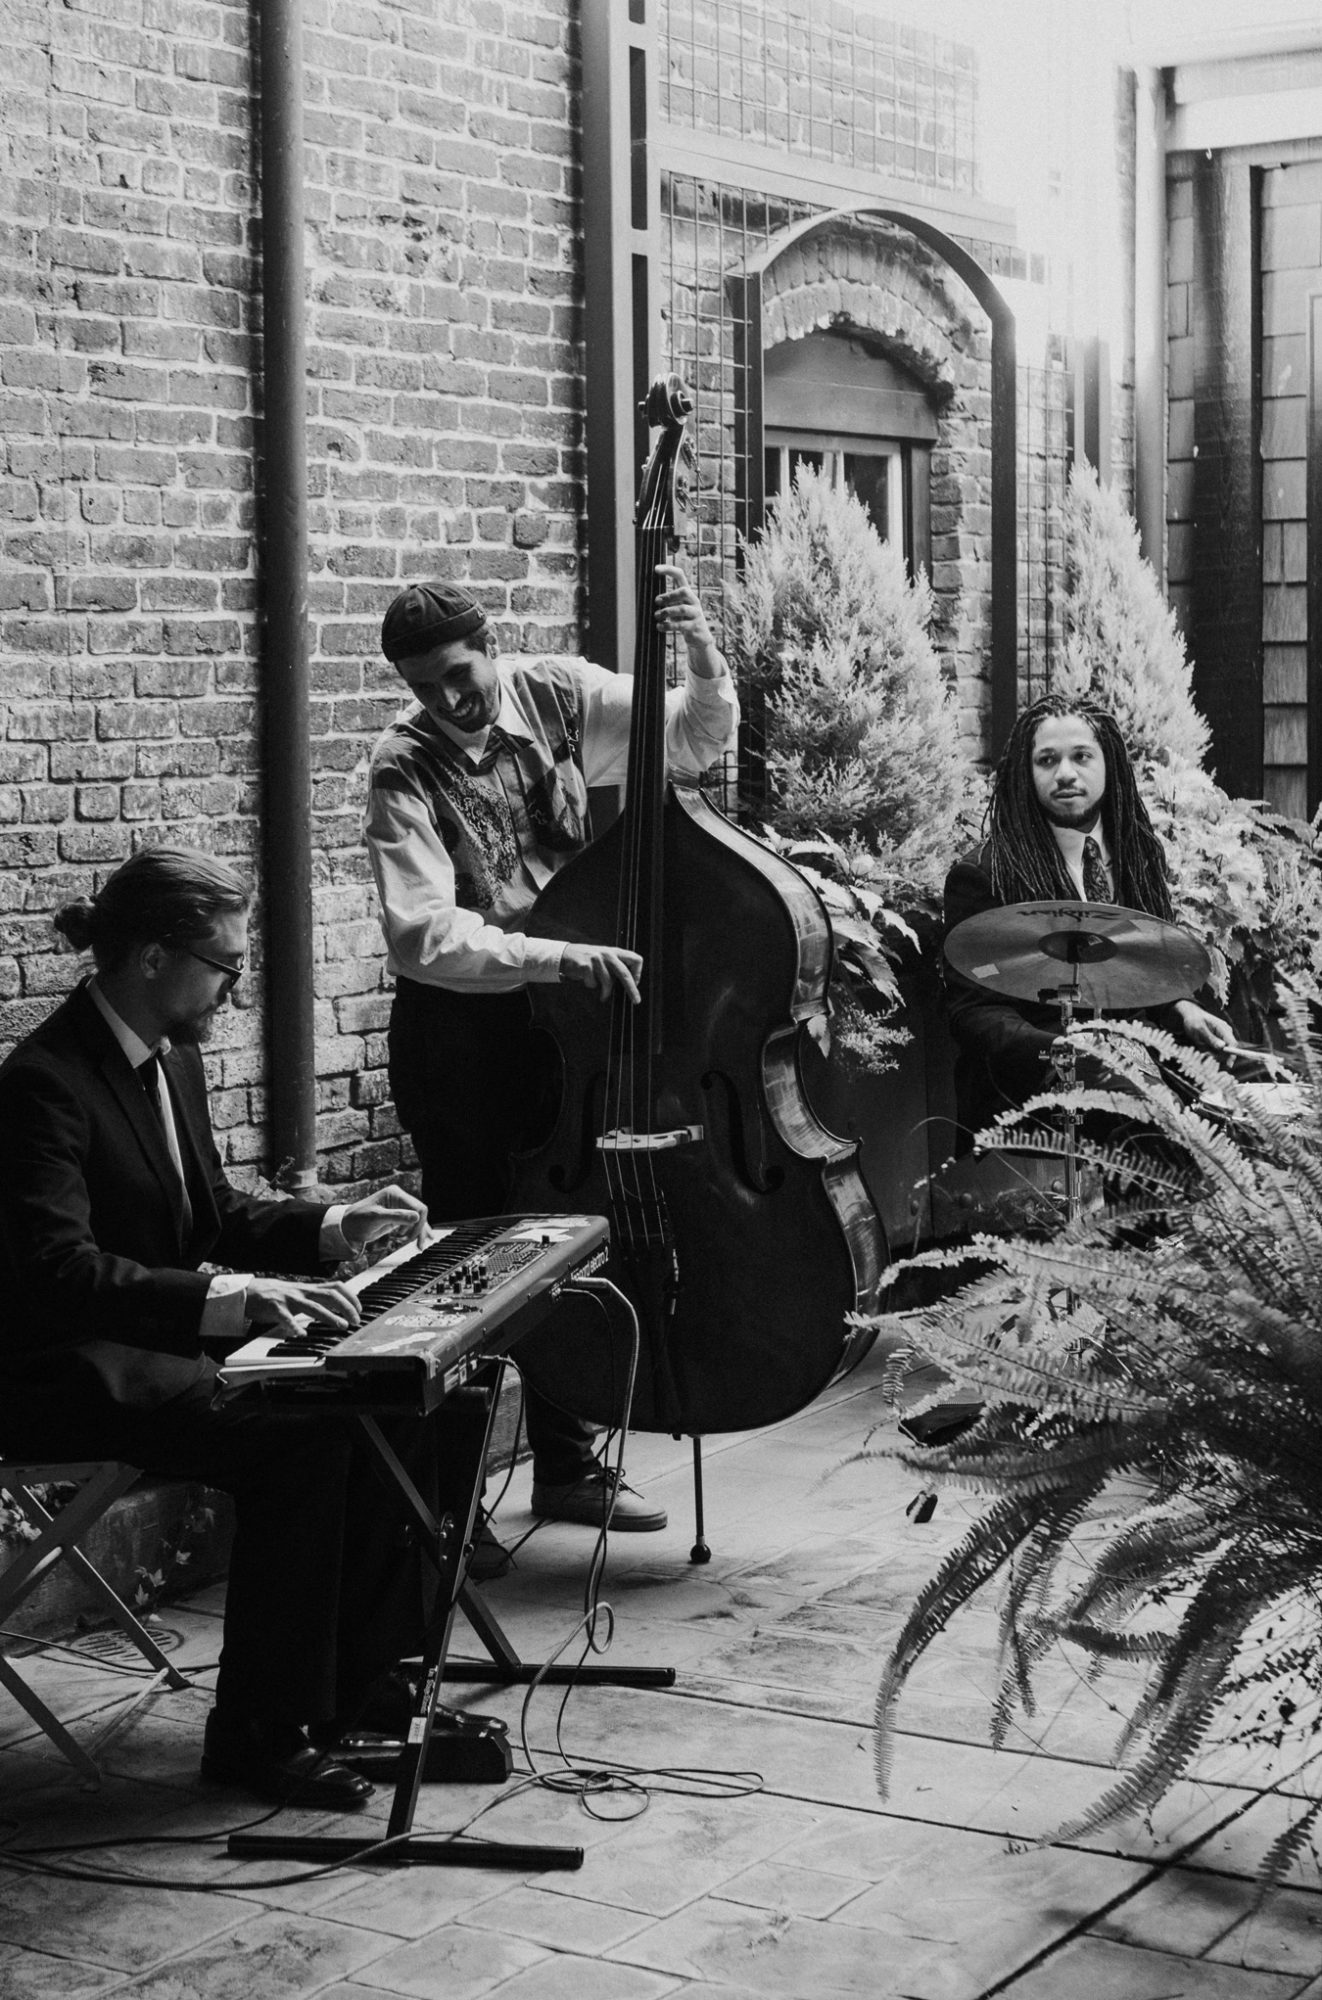 jazz trio playing on outdoor patio